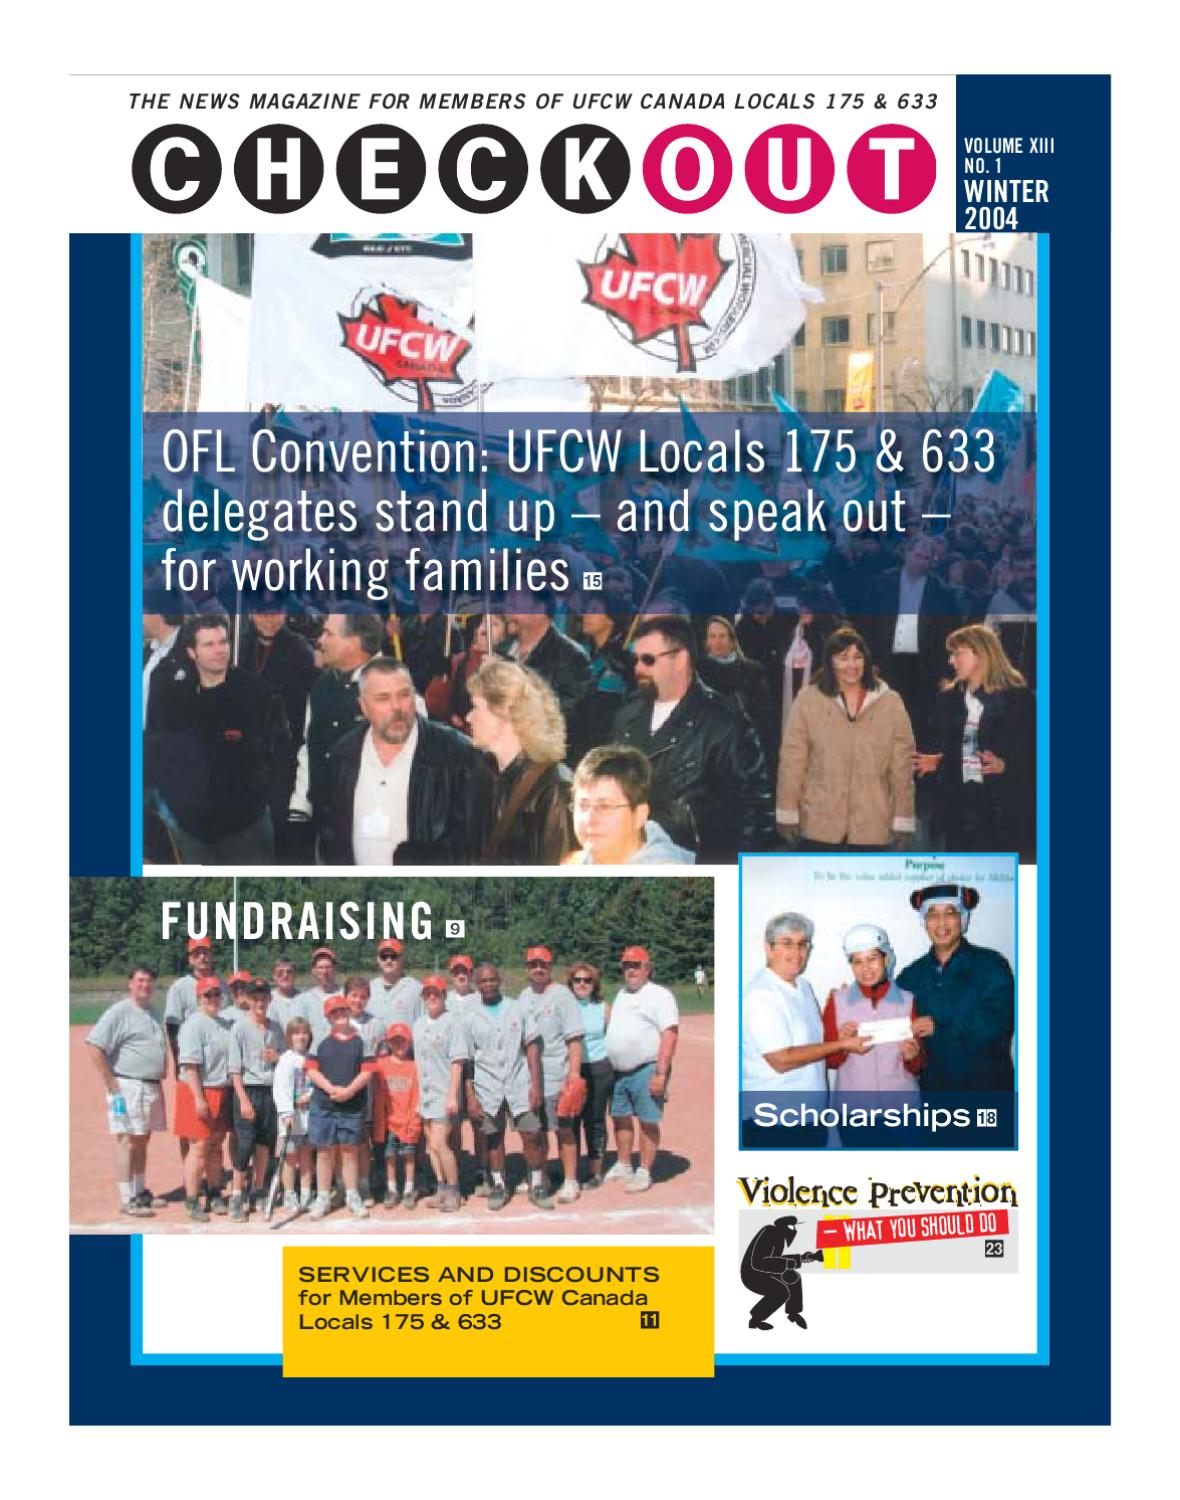 Checkout Winter 2004 By Ufcw Locals 175 633 Issuu